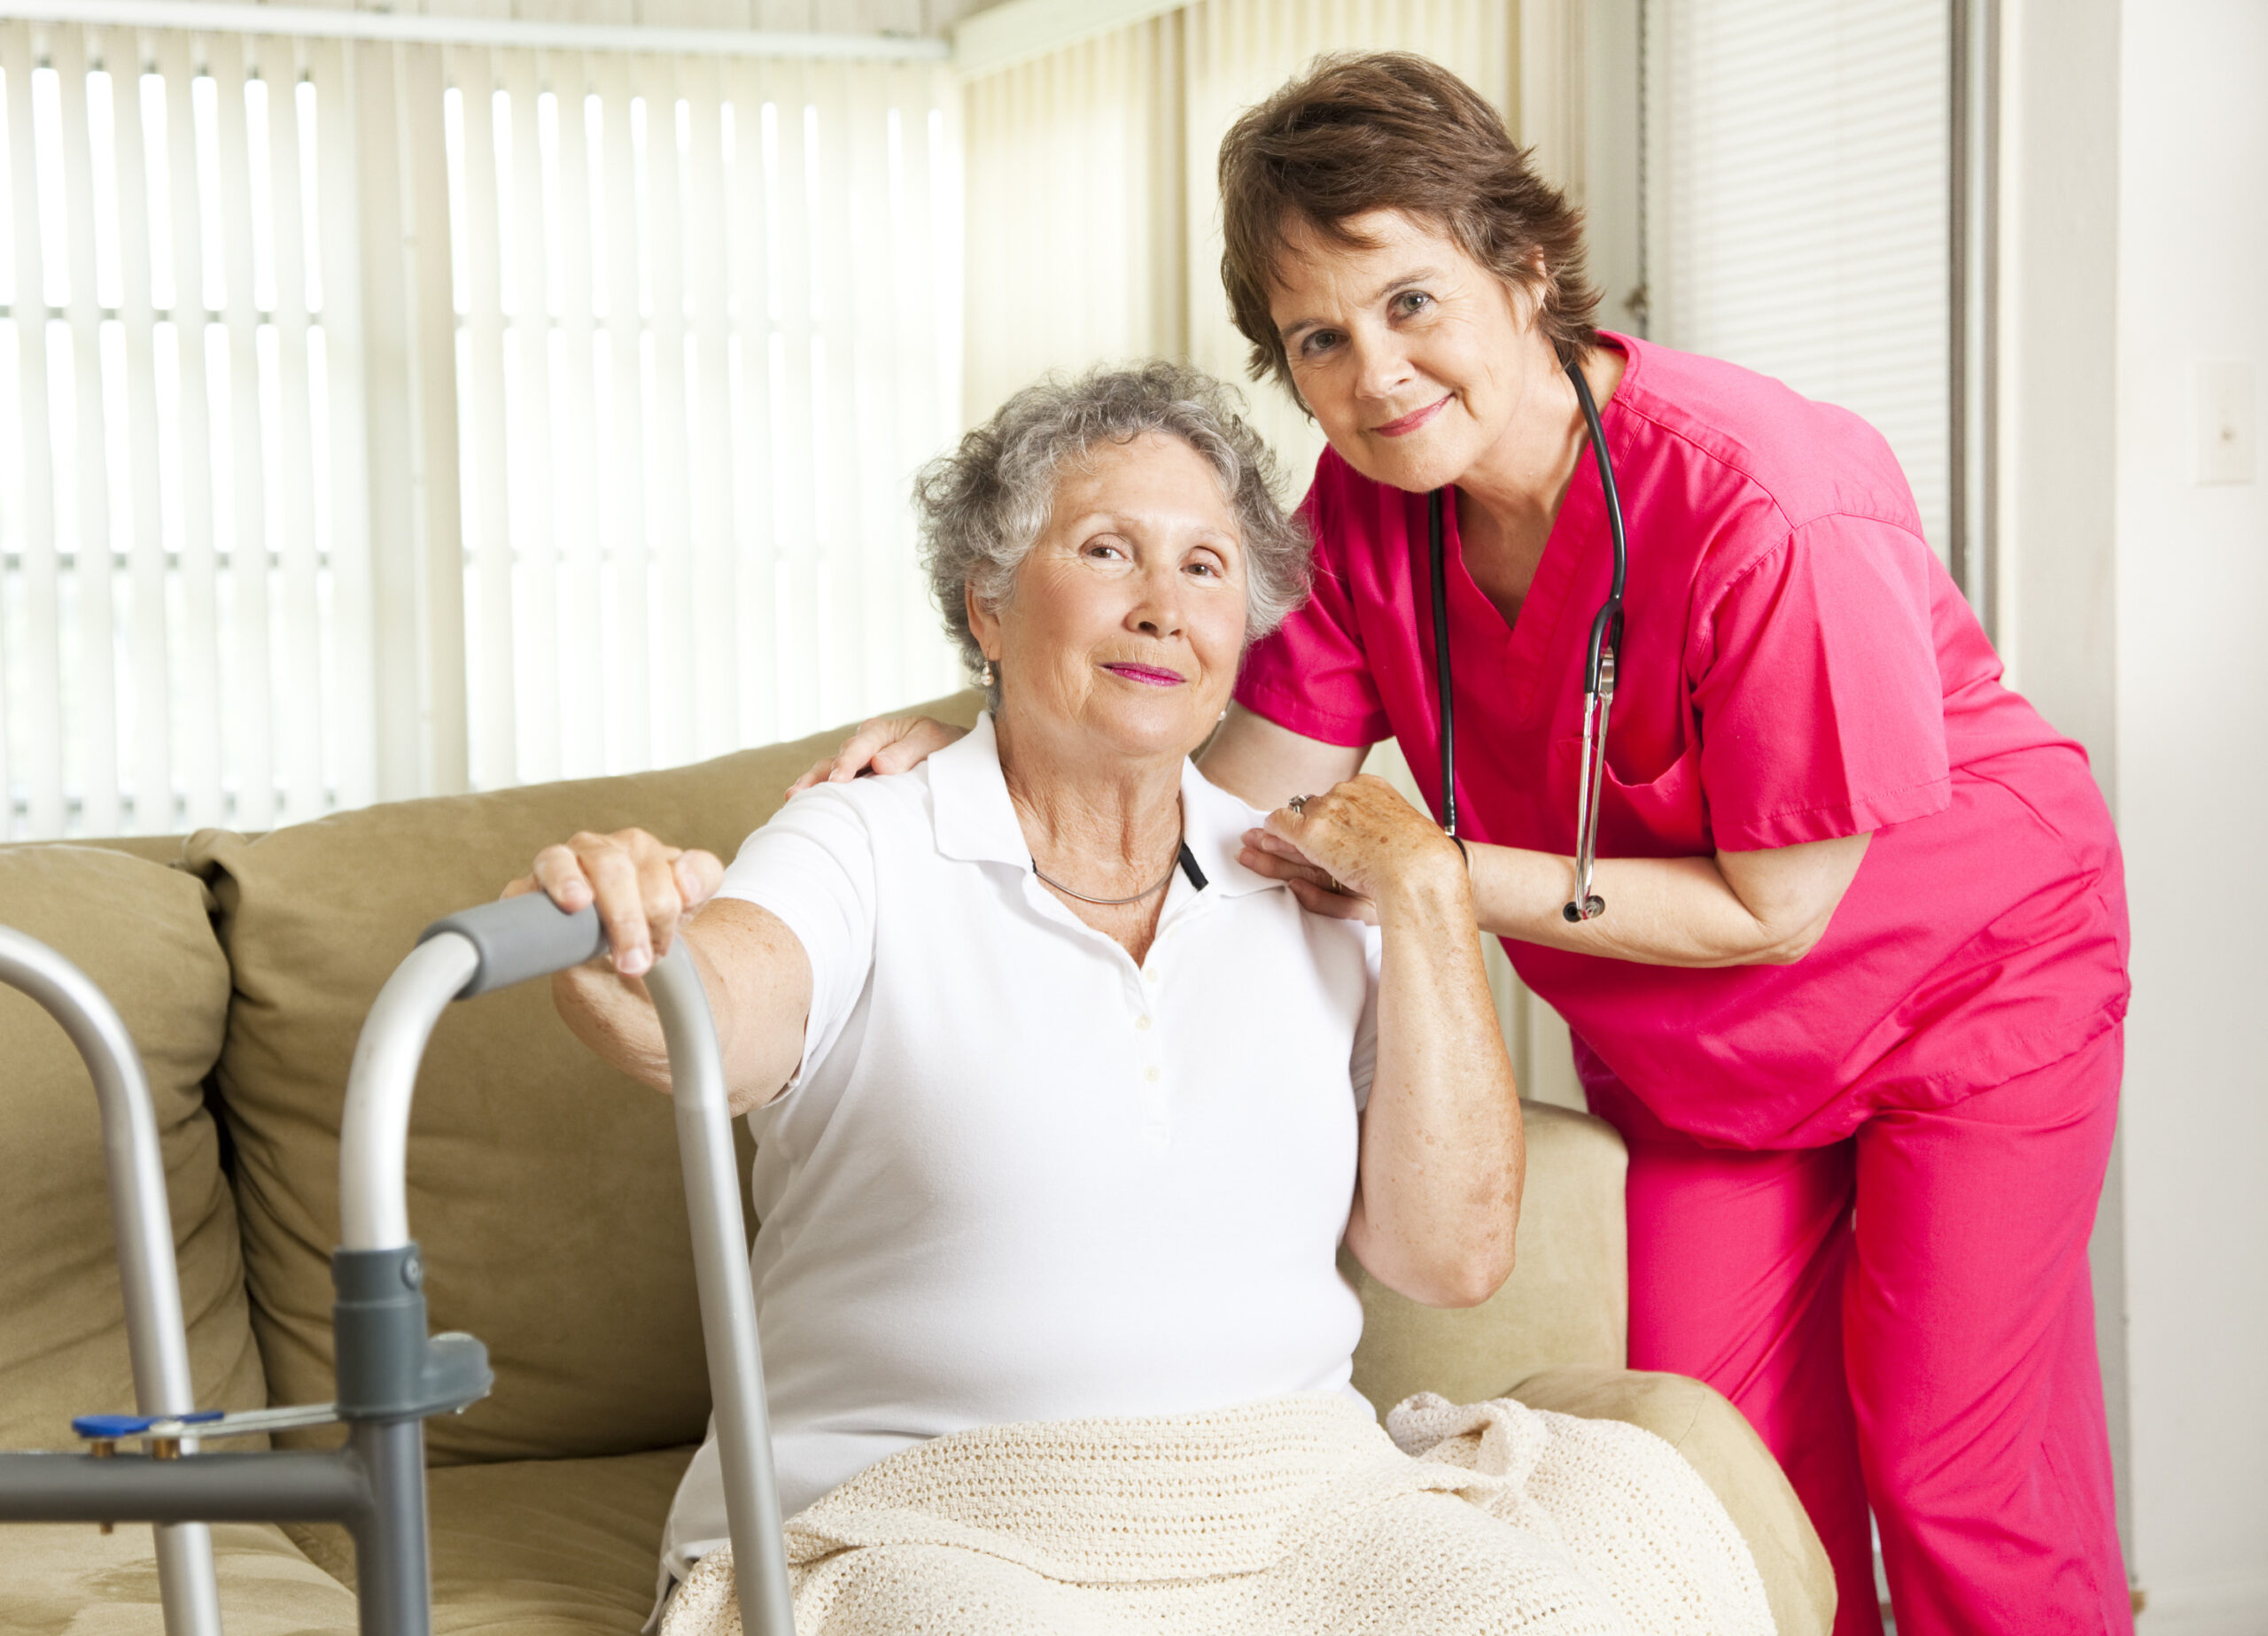 Old Age - When You Need Help The Most